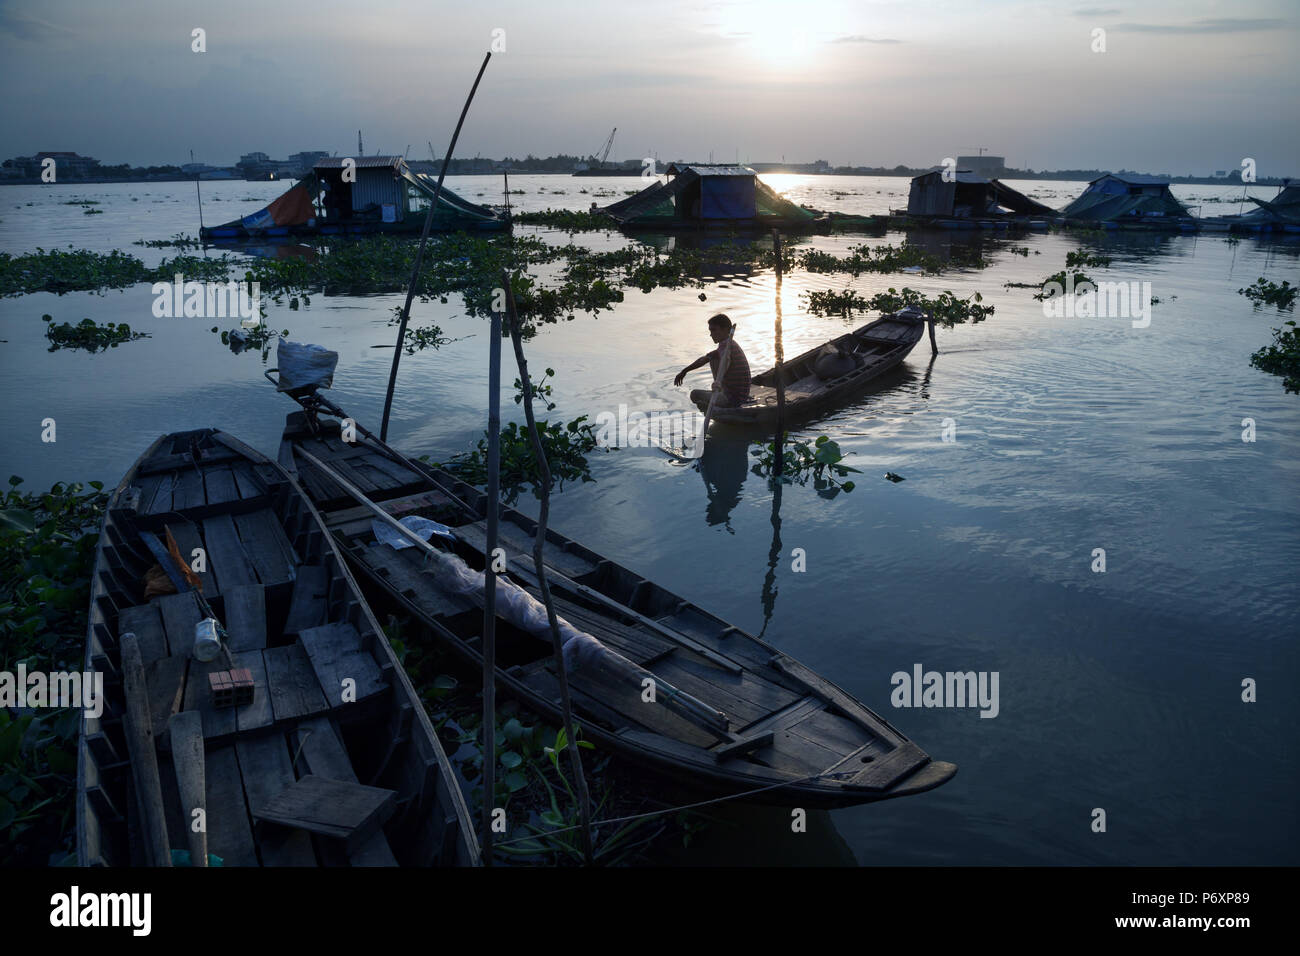 Amazing sunset landscape on Mekong river with boat from An Binh island , Vietnam - Stock Image